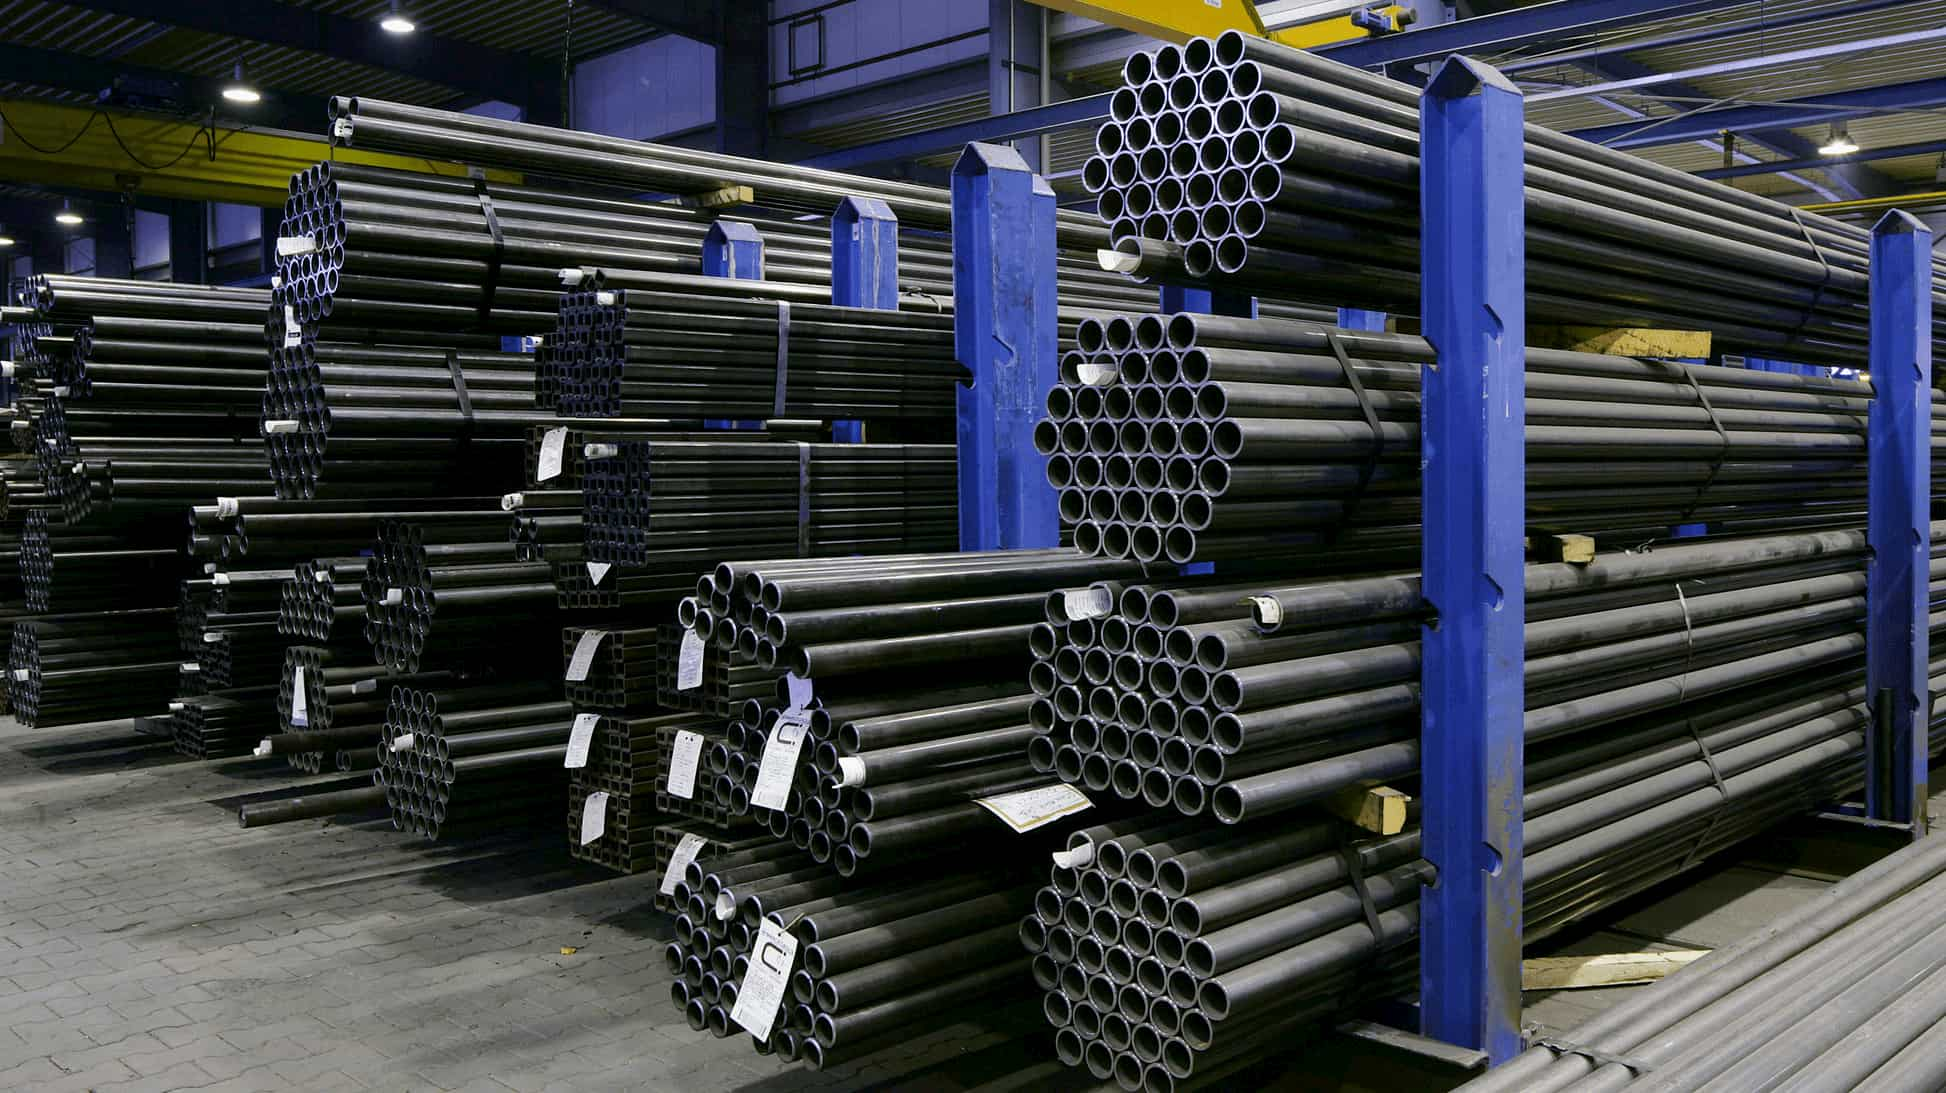 Image of metal bars as a symbol for the Metals industry